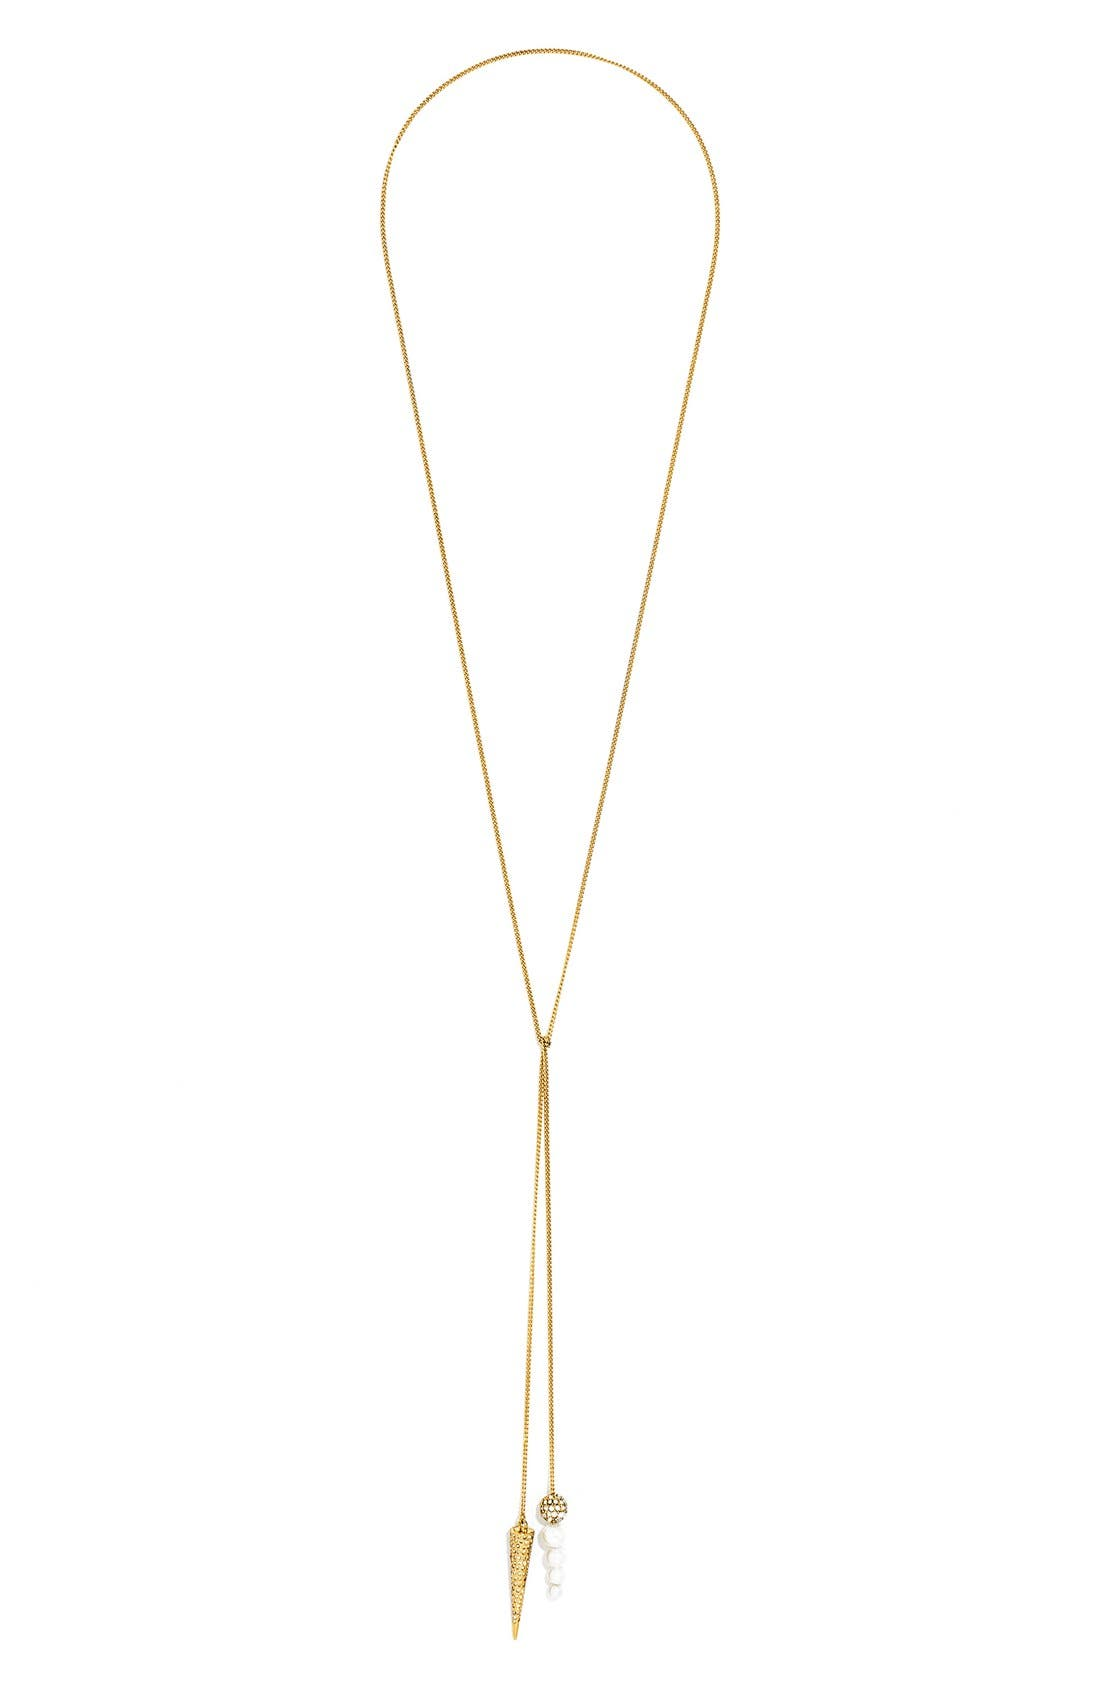 Main Image - BaubleBar 'Double Tail' Y-Chain Necklace